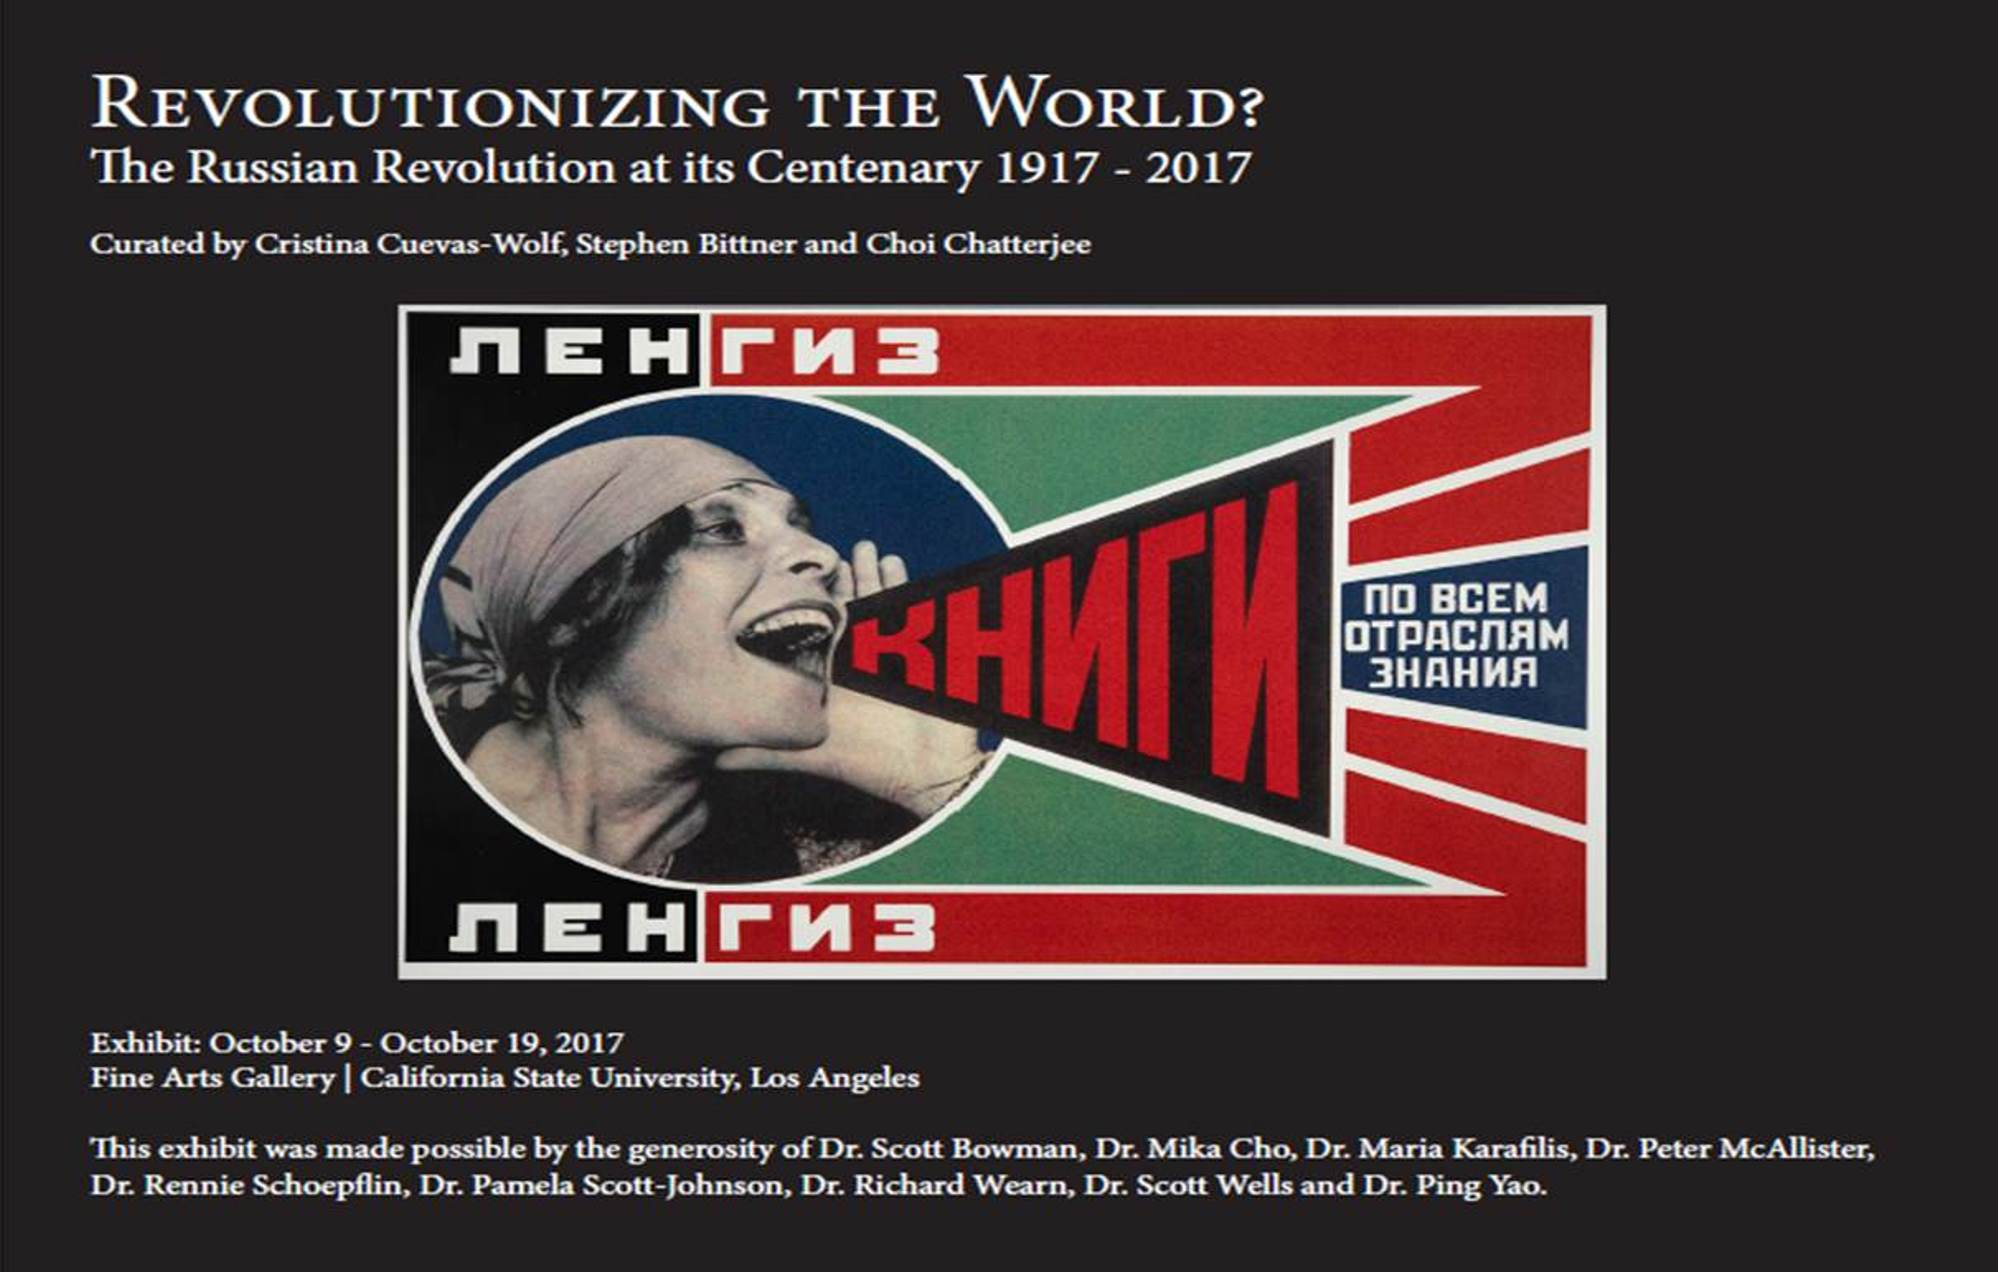 Revolutionizing the World: The Russian Revolution at Its Centenary, 1917-2017